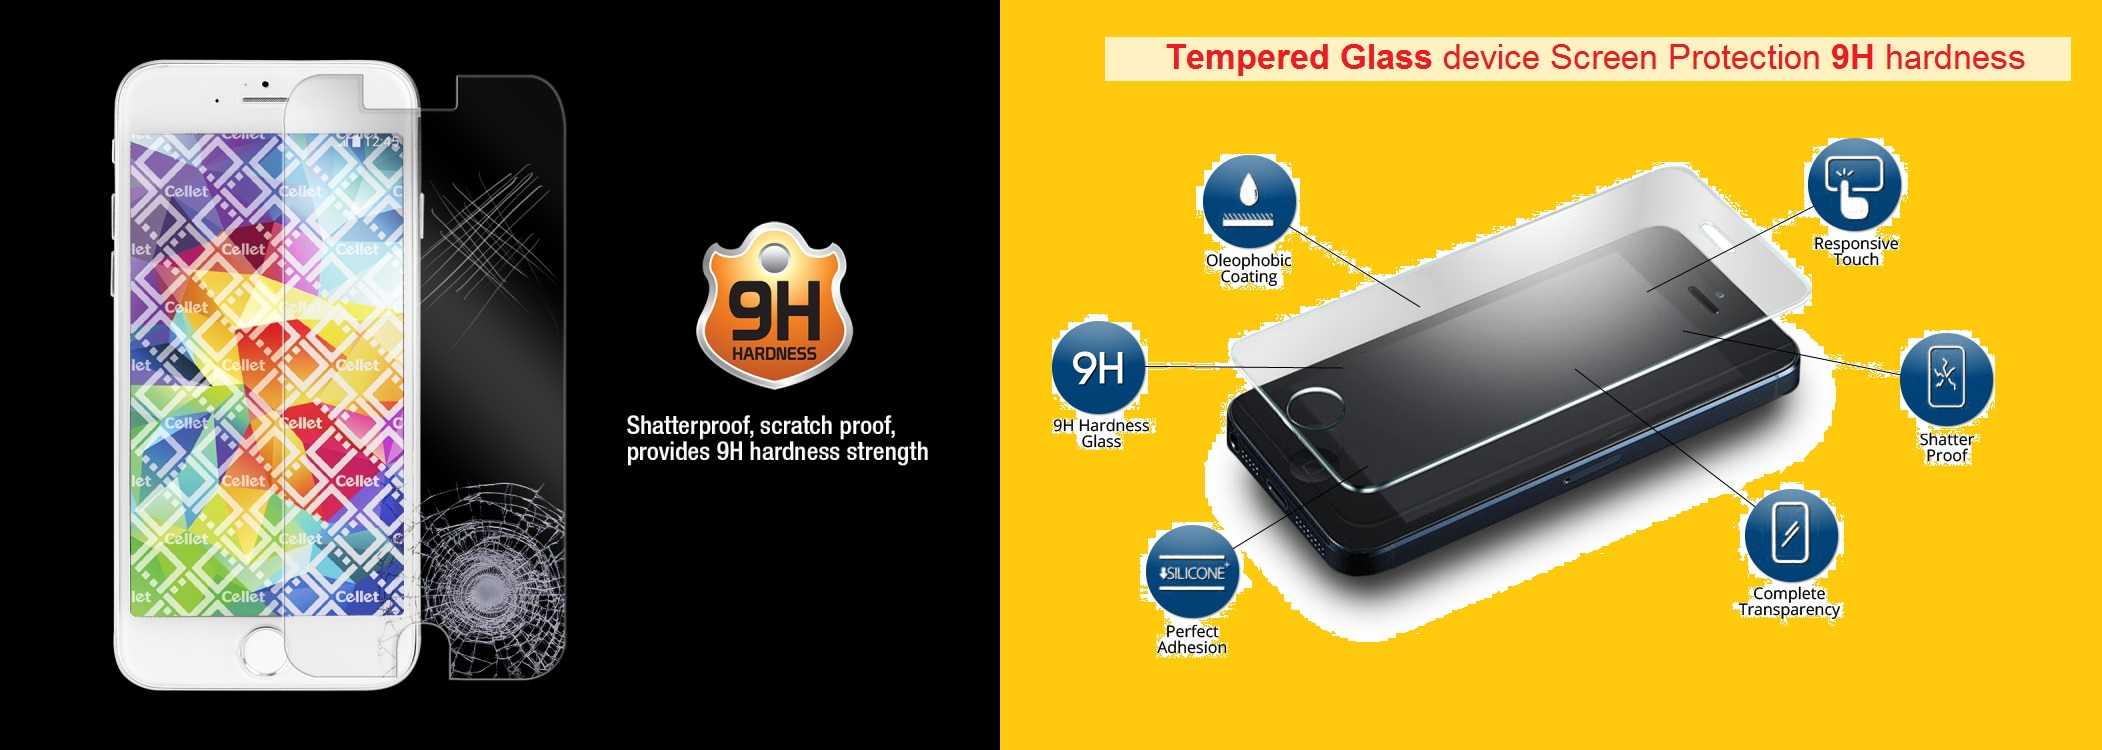 tempered-glass-mg-bey-banner-pic1.jpg